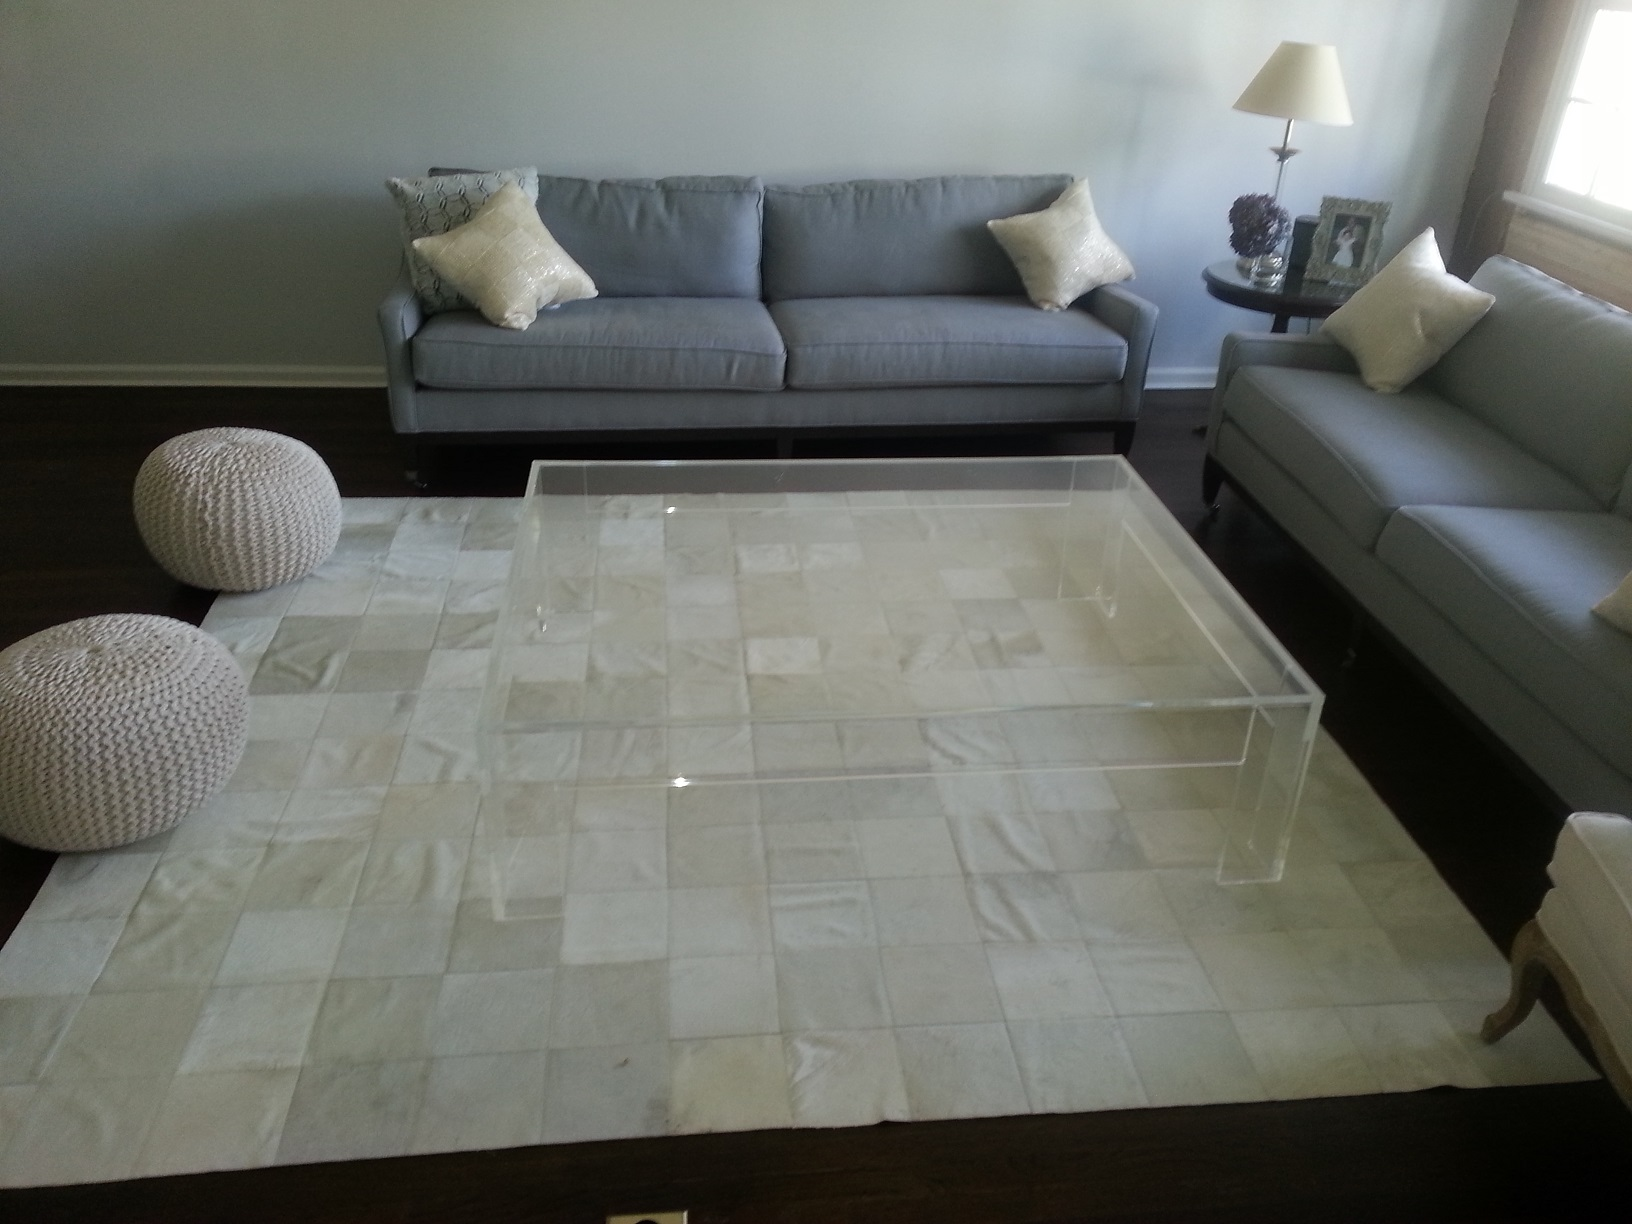 Coffee table_acrylic_Lucite_flange_ large_50 inch sq